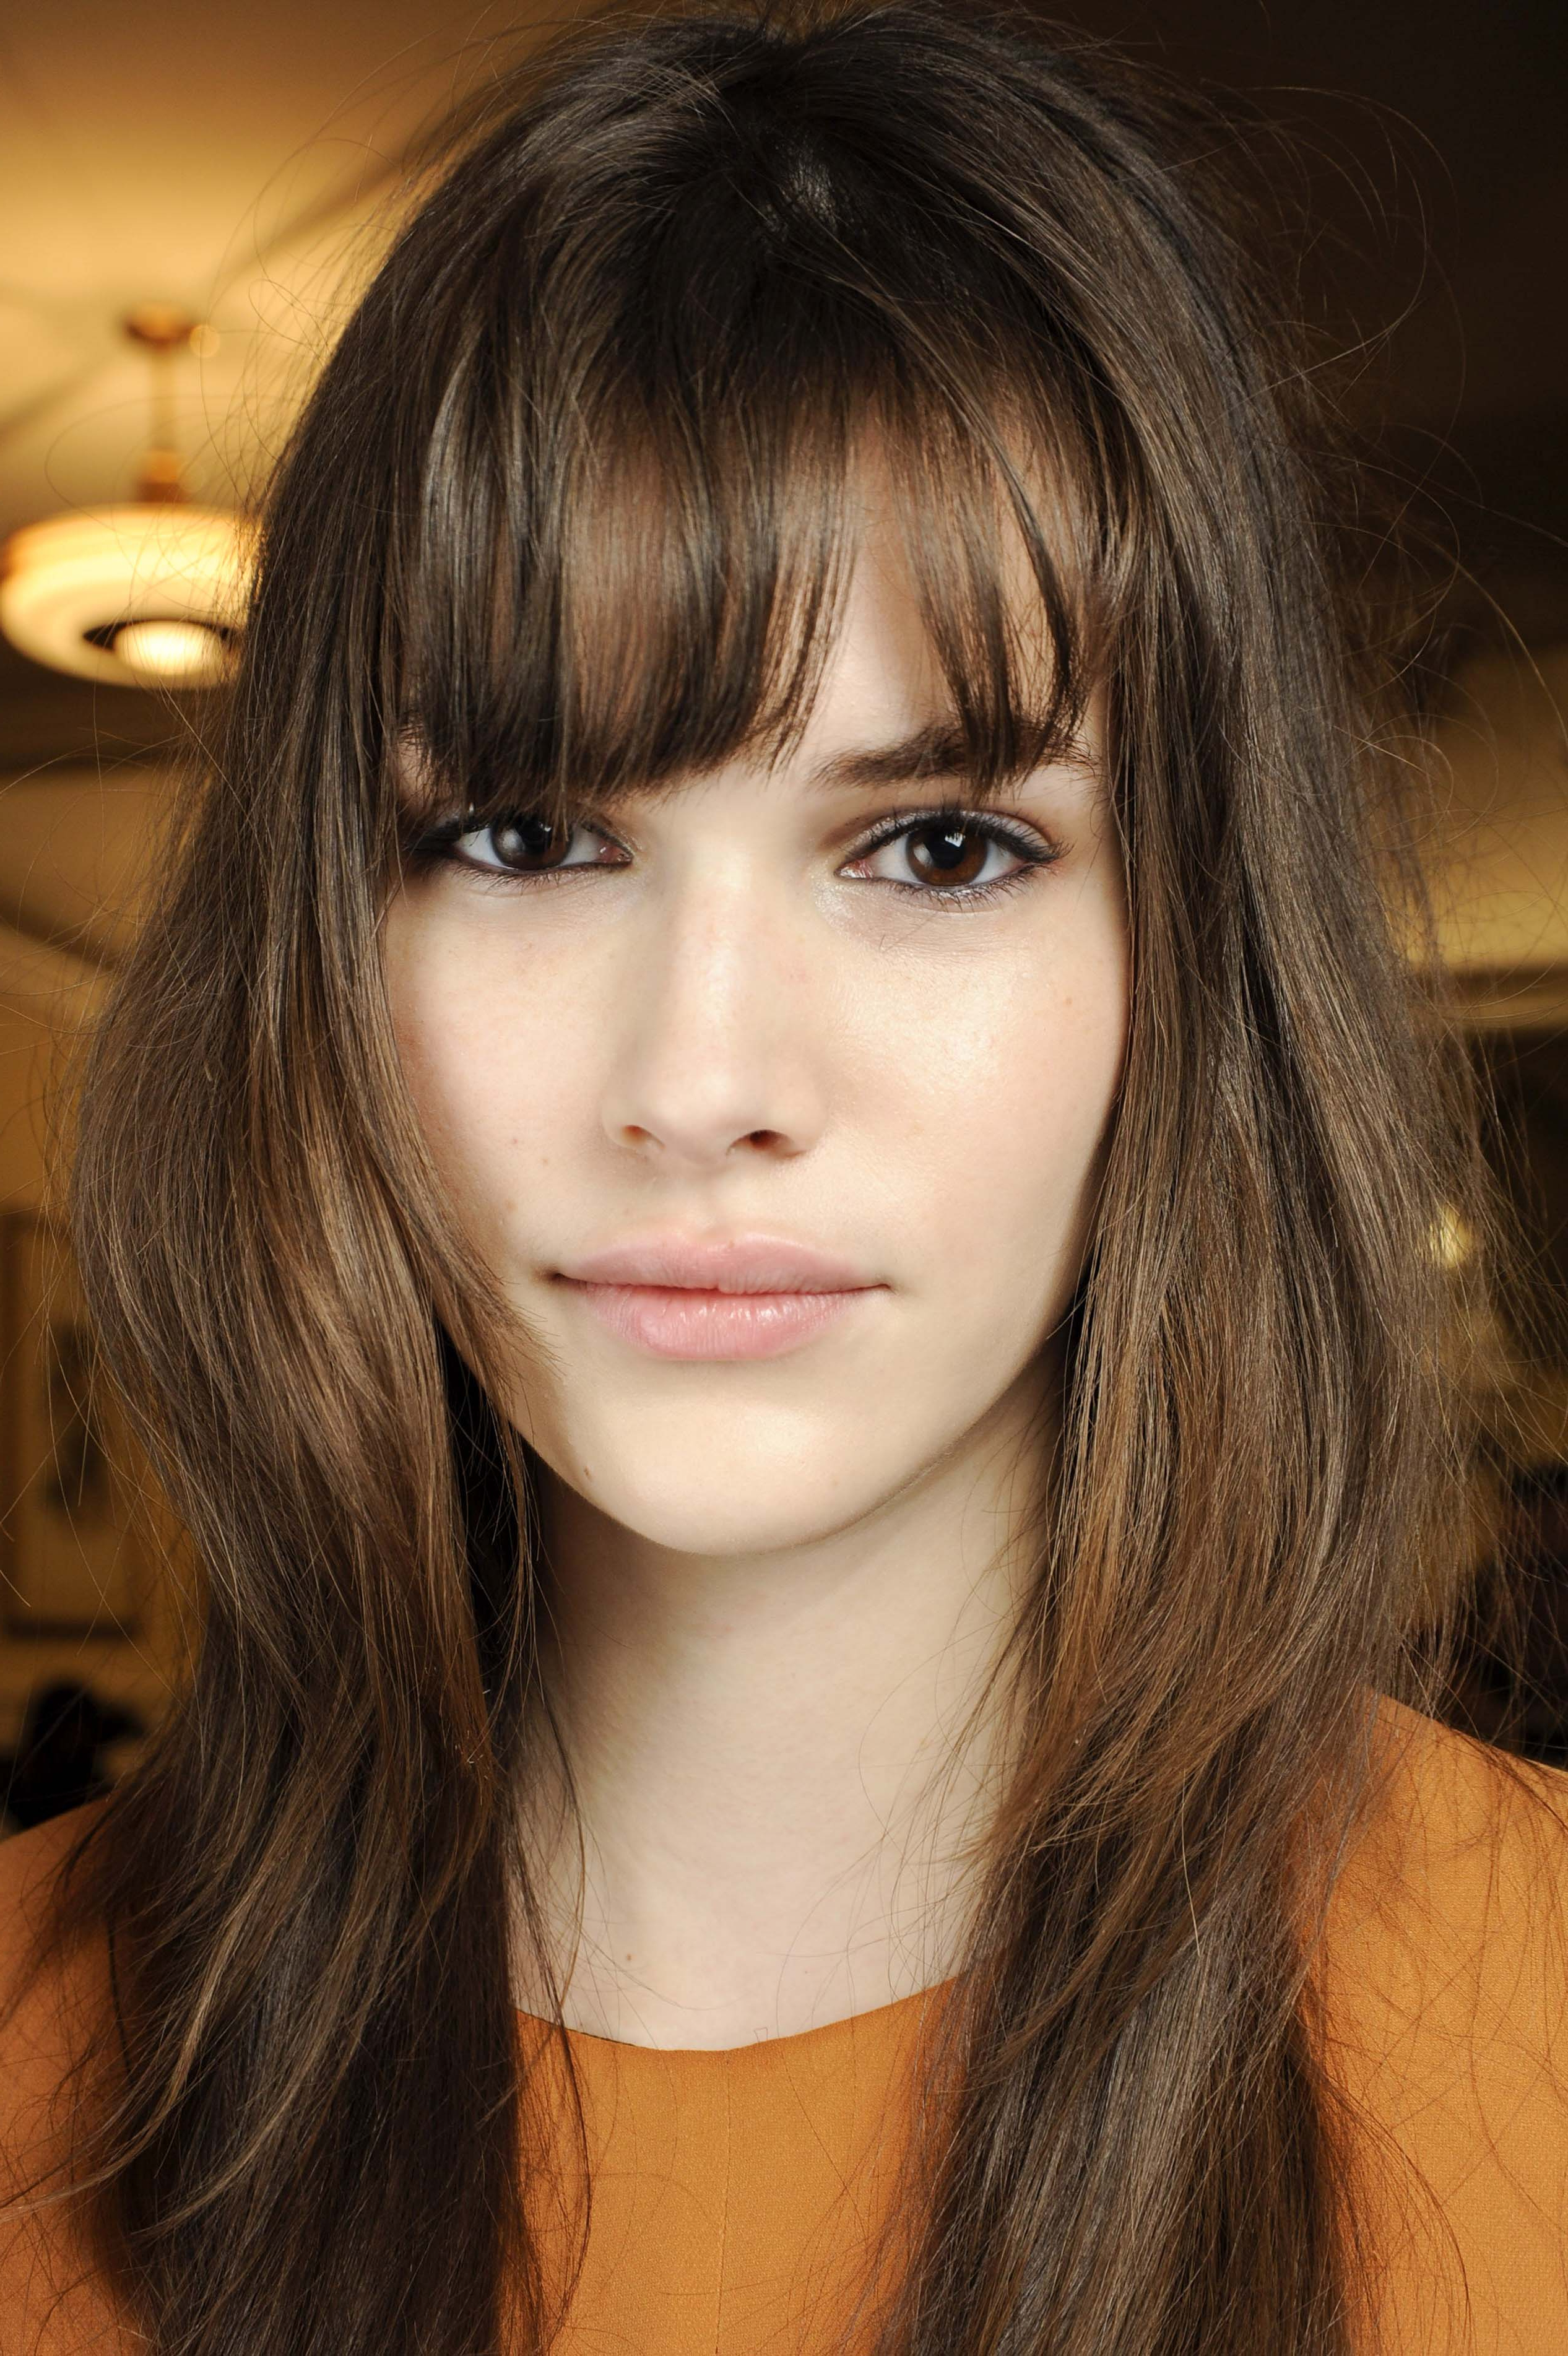 The Most Fashionable Hairstyles For Oblong Faces To Try Now (View 20 of 20)